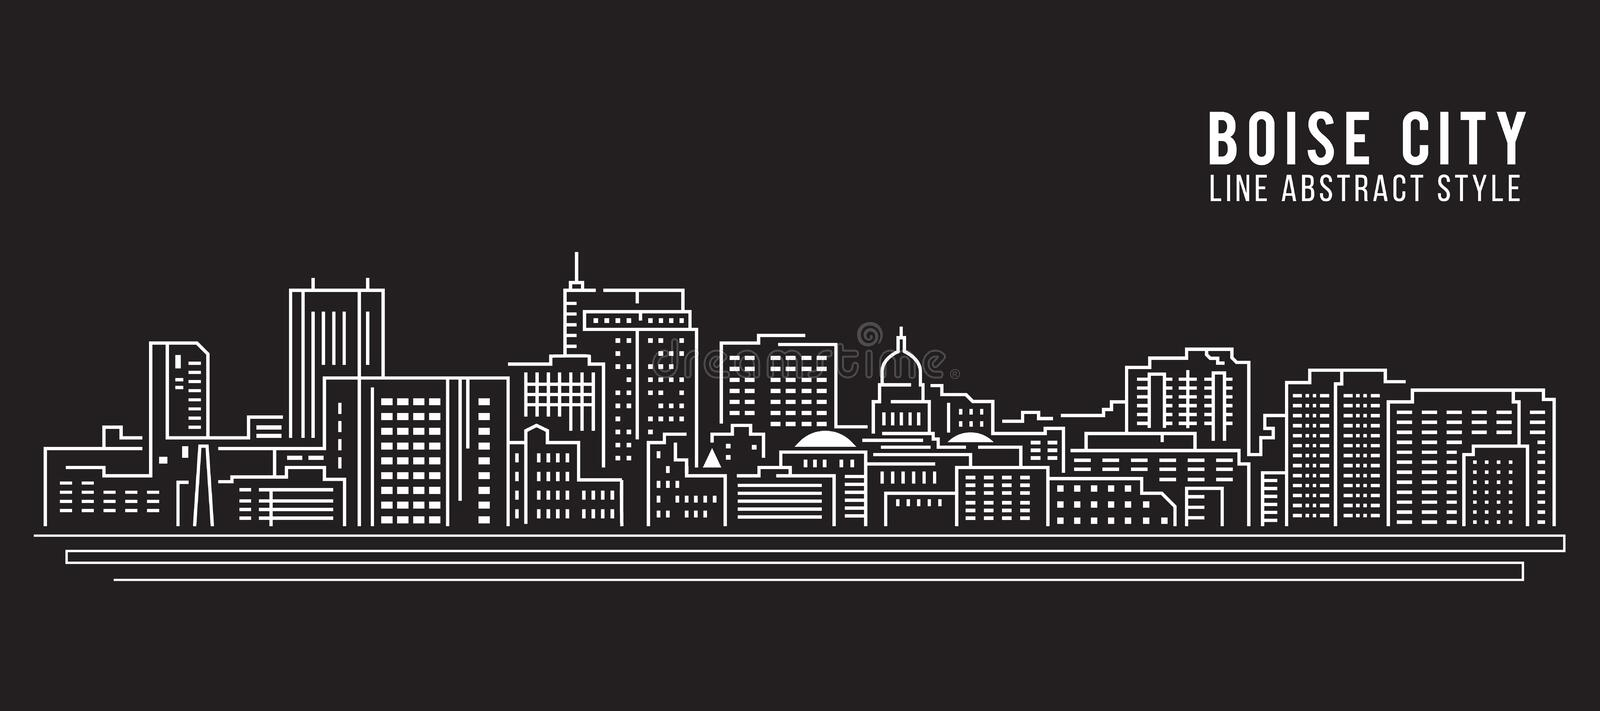 Cityscape Building Line art Vector Illustration design - Boise city vector illustration